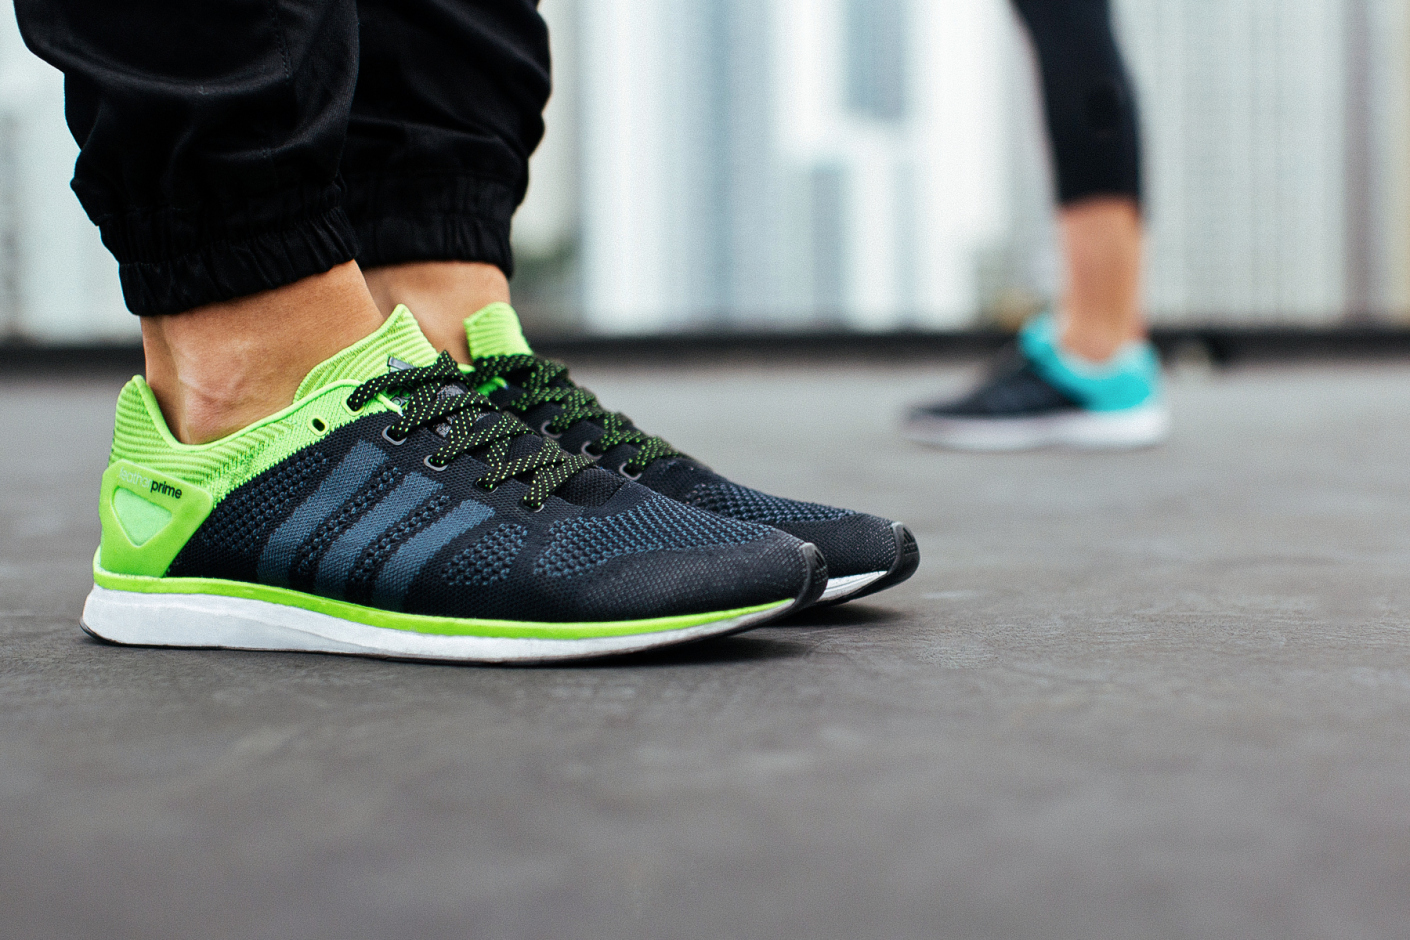 Adidas Adizero Feather Primeknit 2014